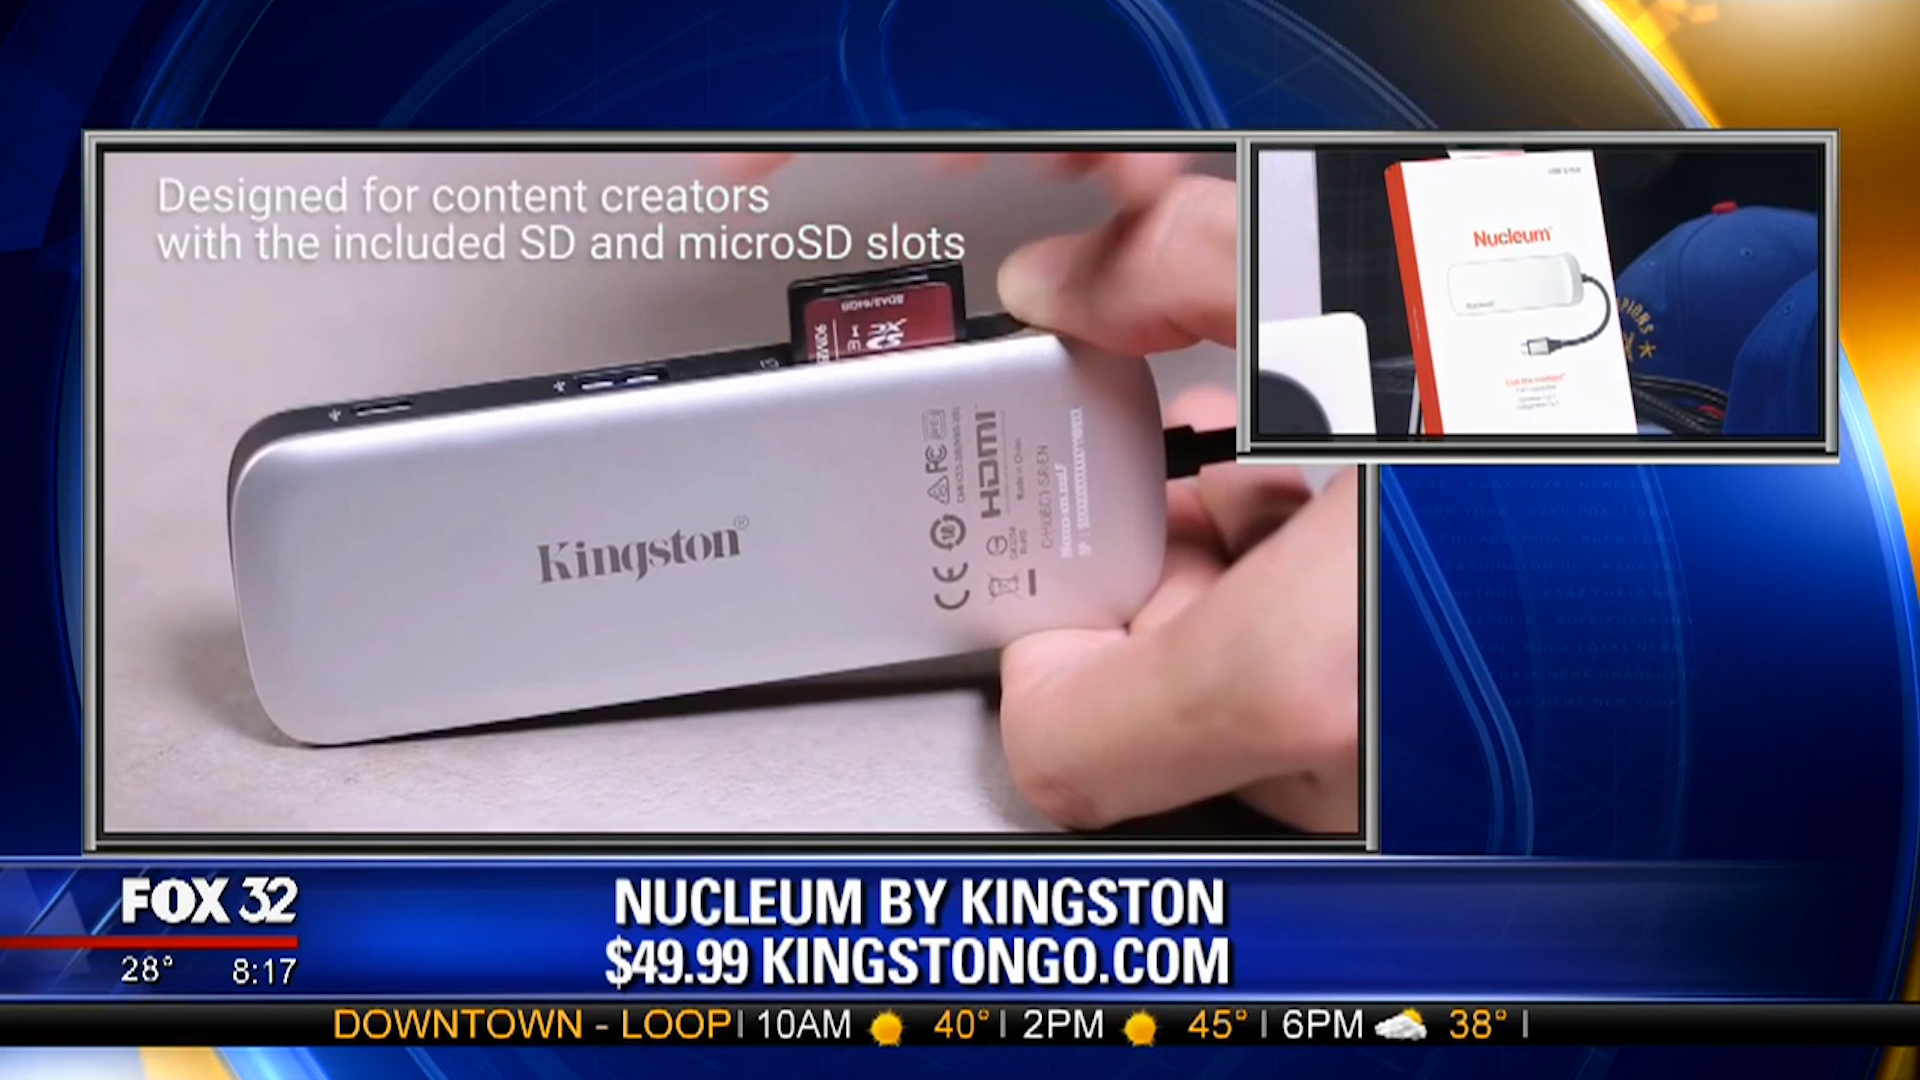 NUCLEUM by KINGSTON (7-in-1 Type-C Hub) - $49.99Shop Now